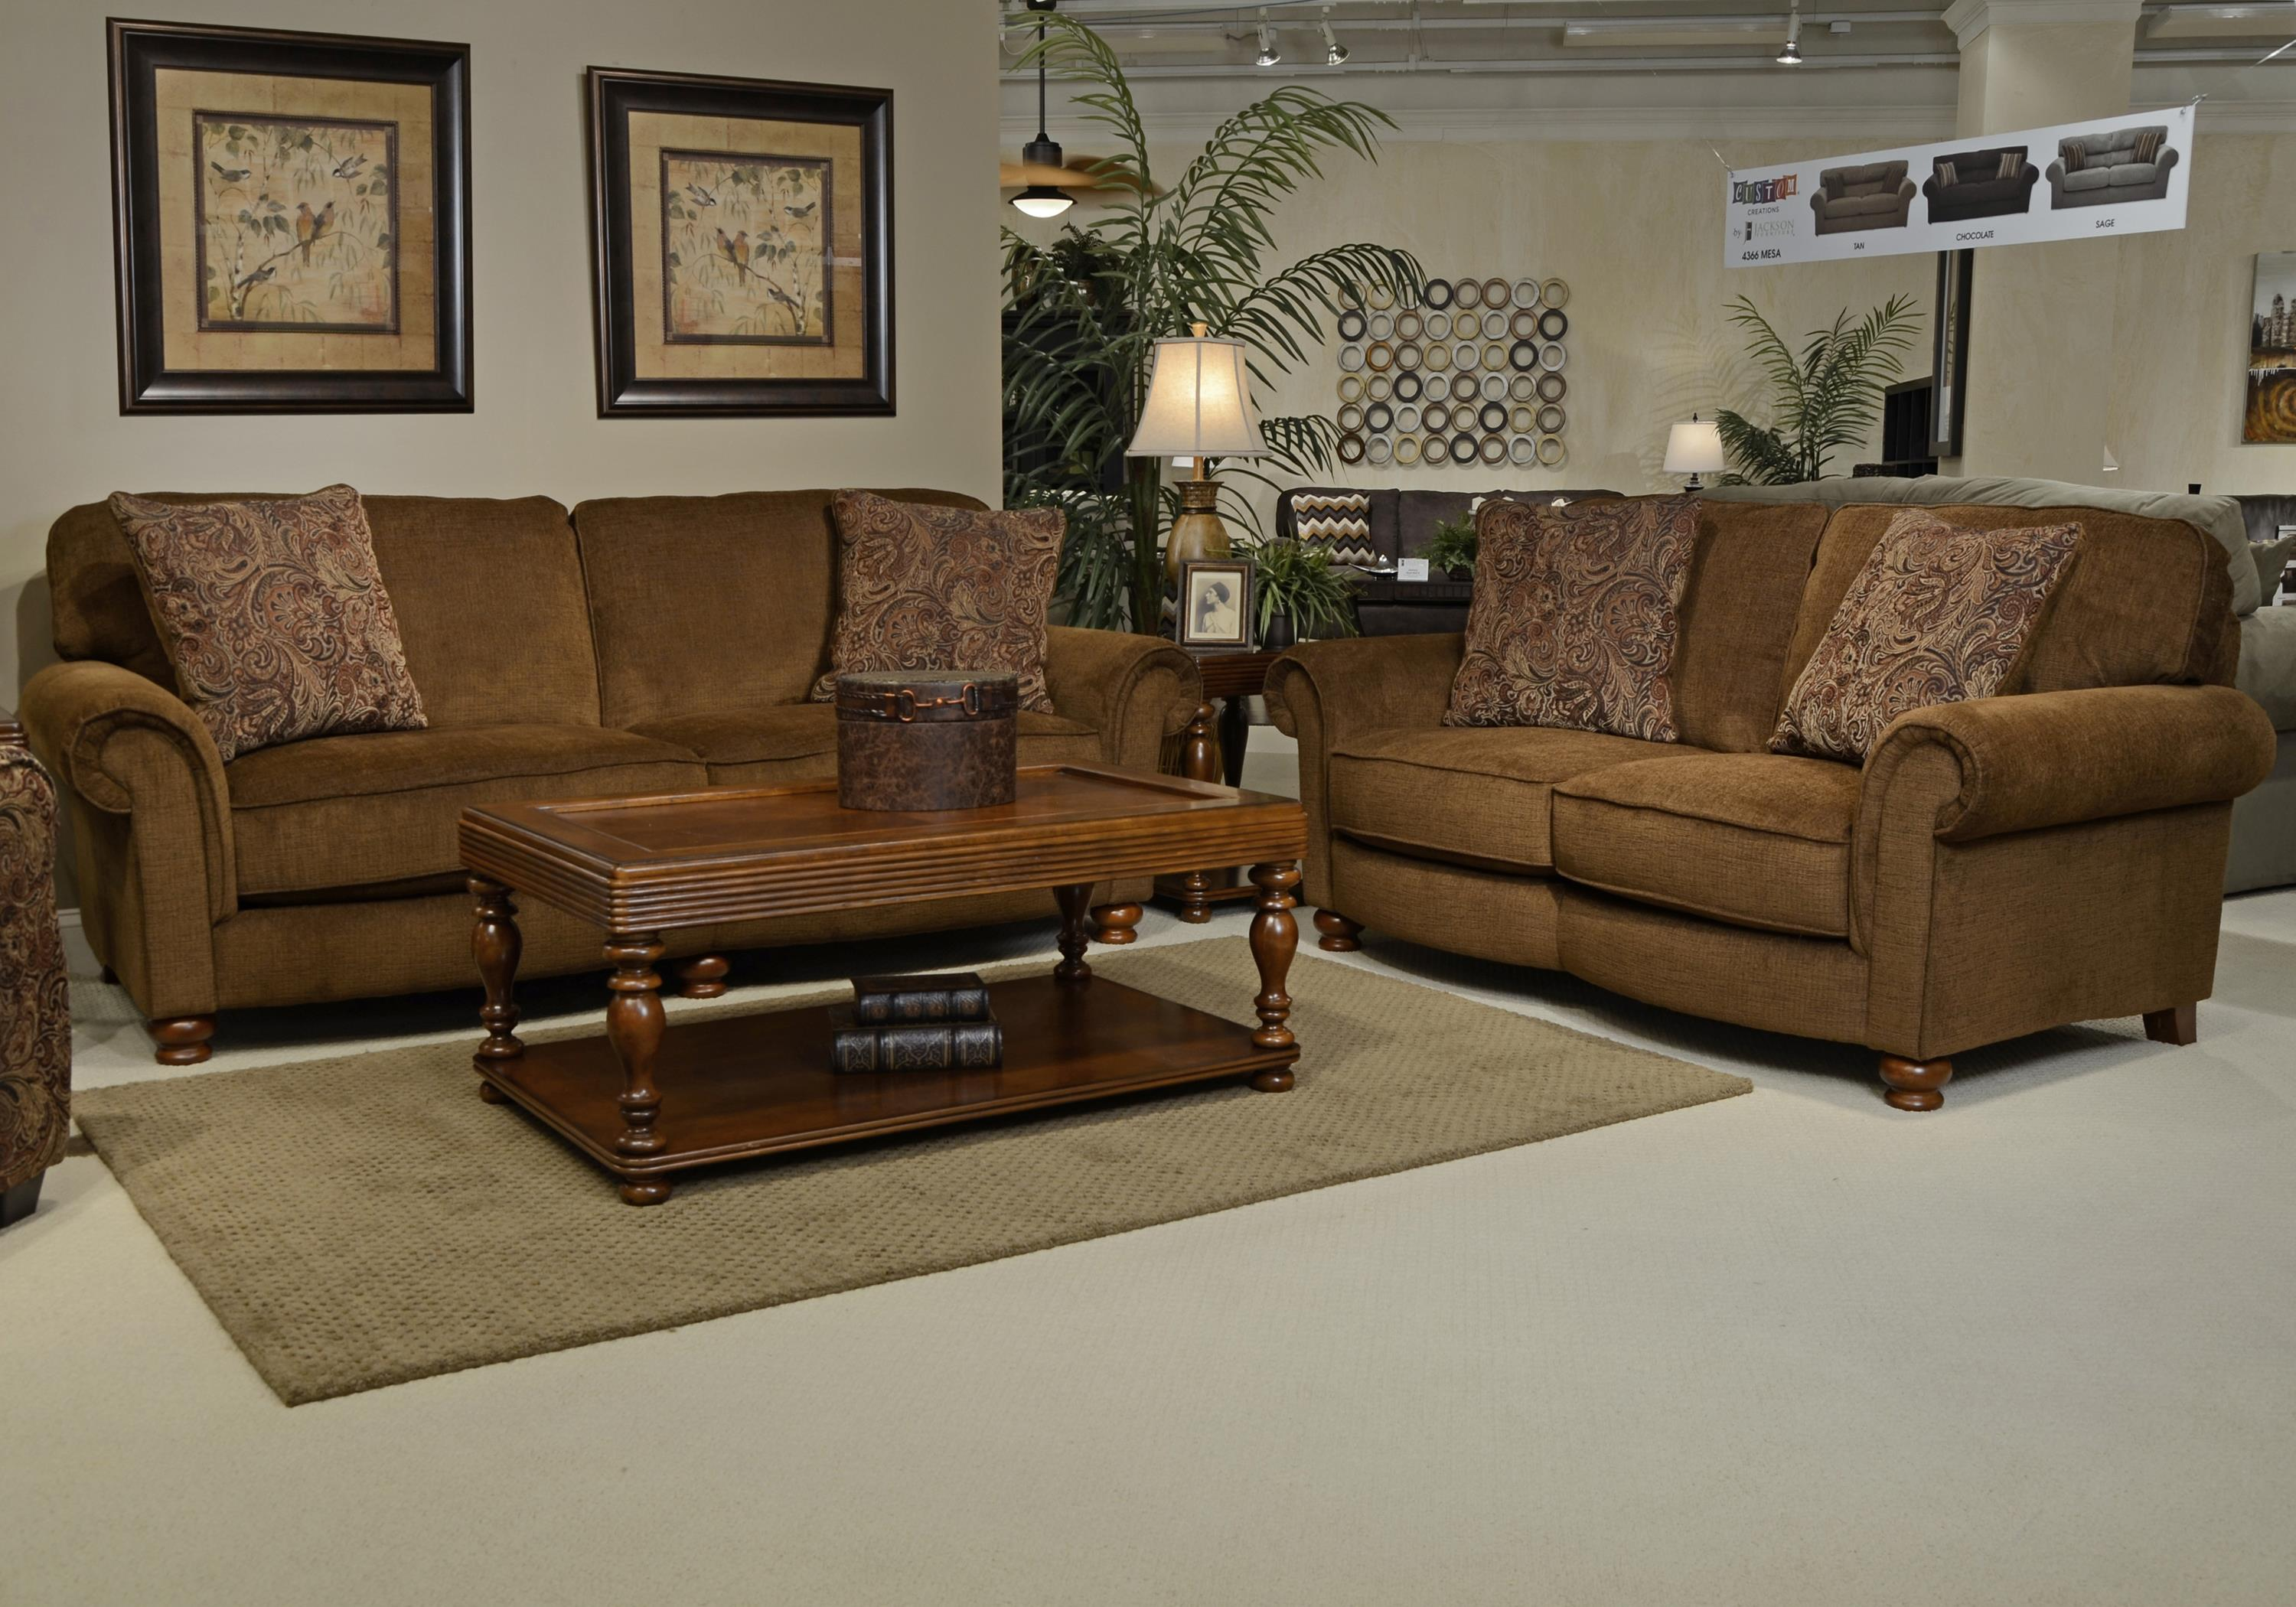 Jackson Furniture Downing Stationary Living Room Group - Item Number: 4384 Living Room Group 2